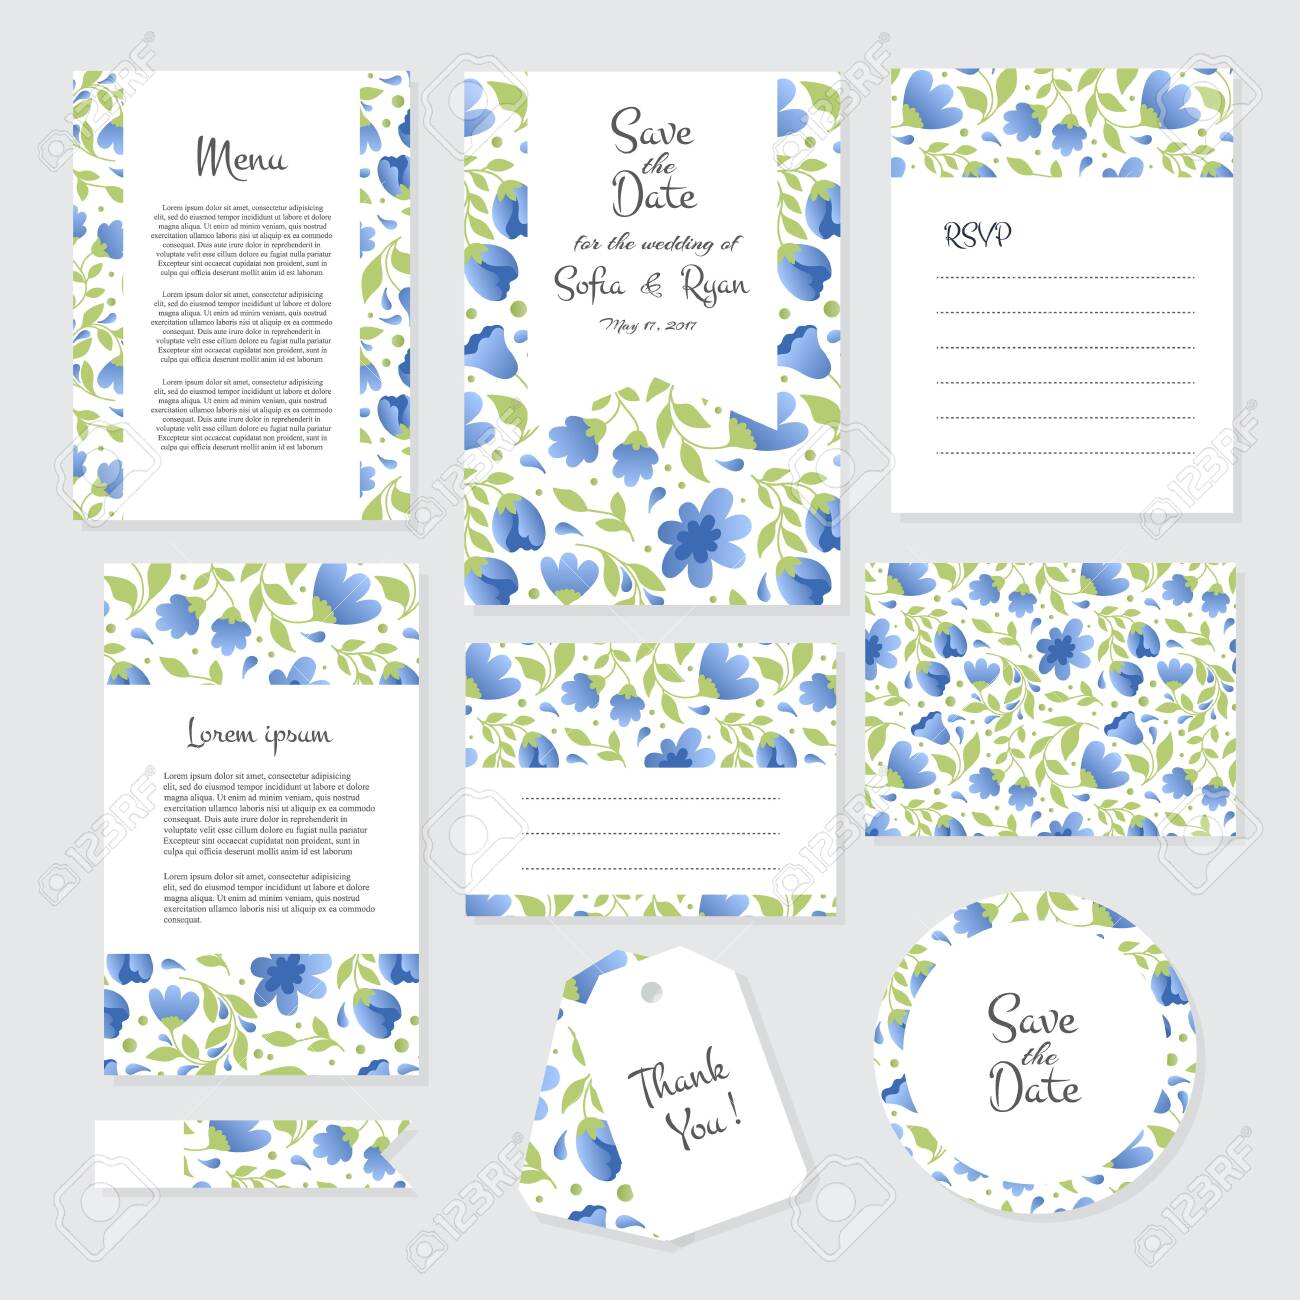 Vector gentle wedding cards template with flower design  invitation